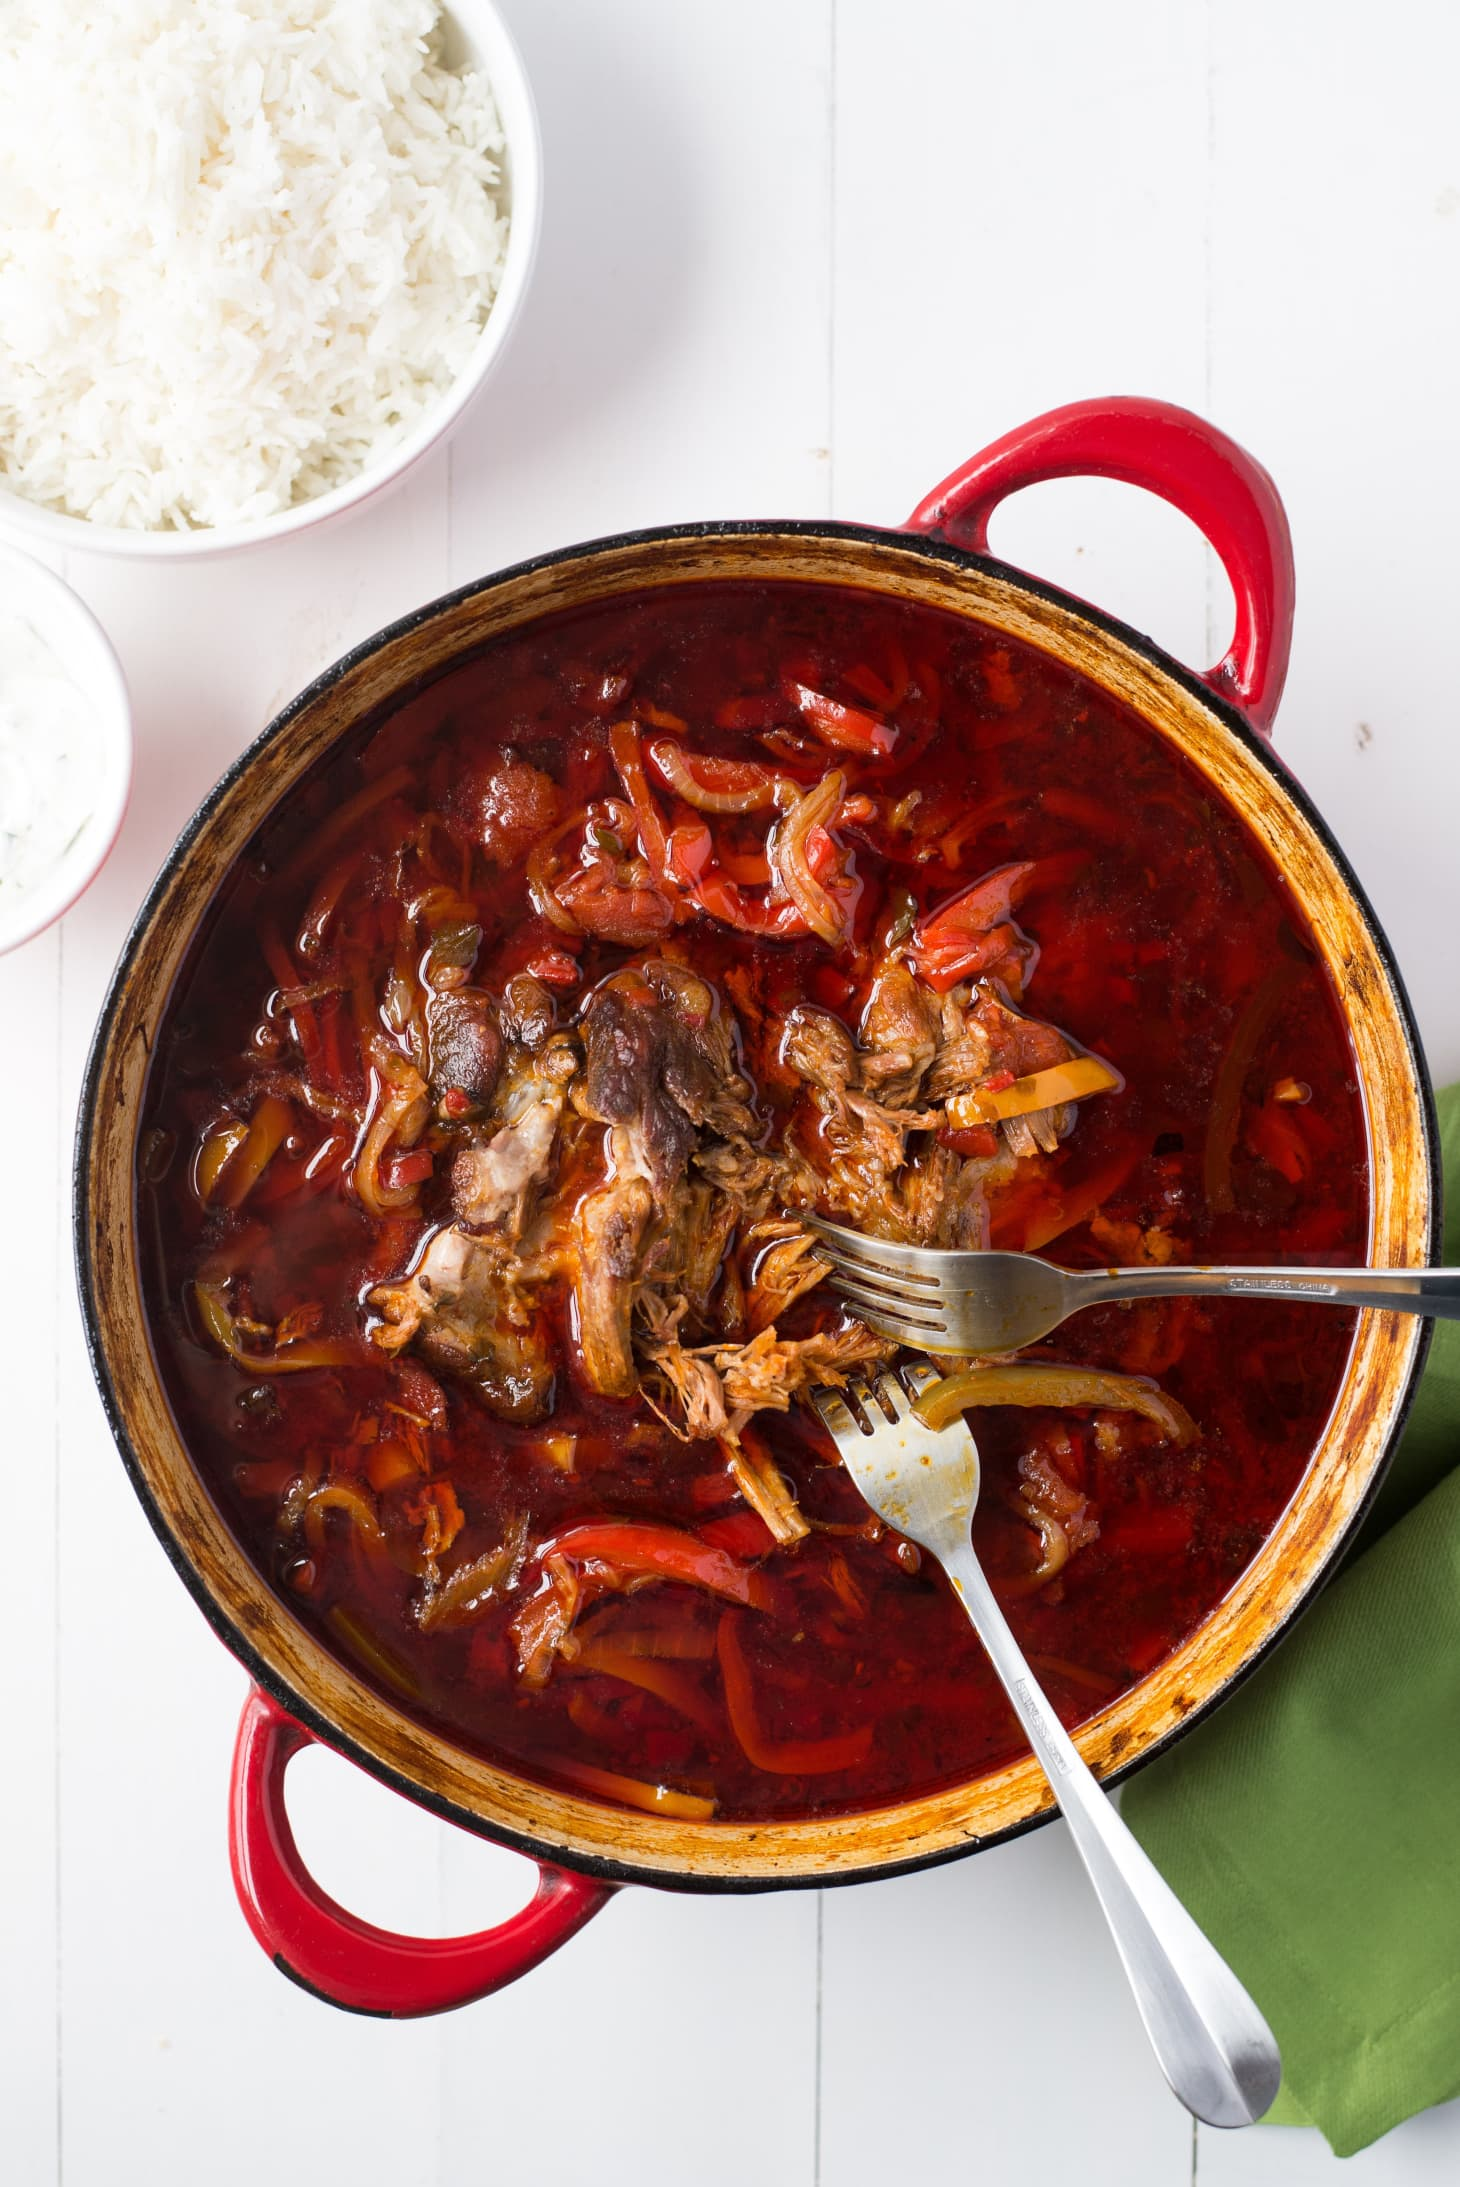 Everything About Pork Shoulder: How to Buy It and Cook It to